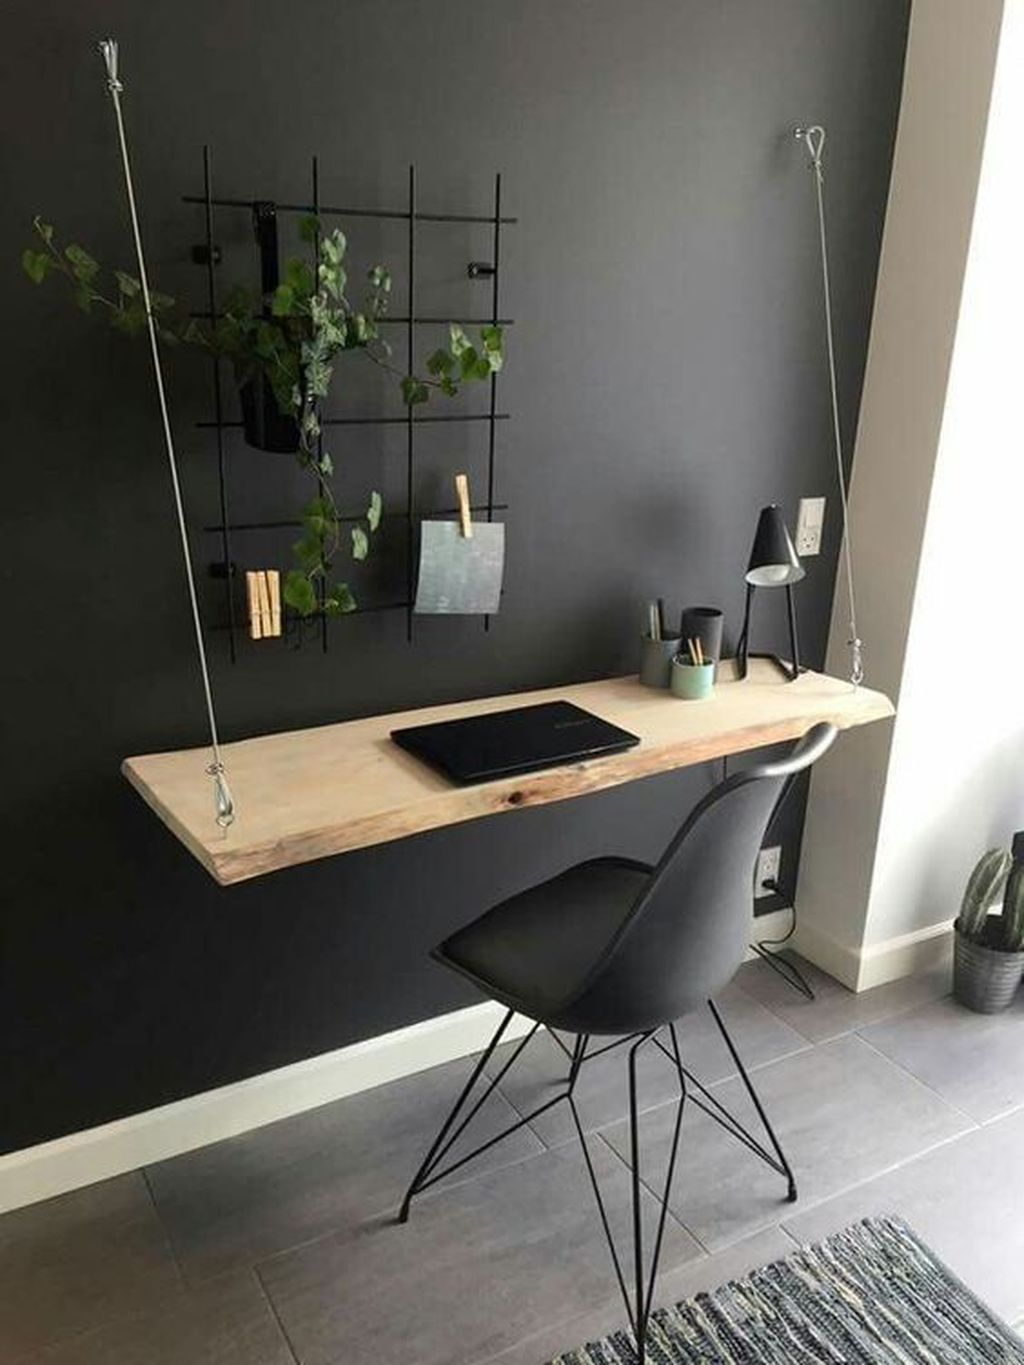 Inspiring Small Office Ideas For Small Space 23